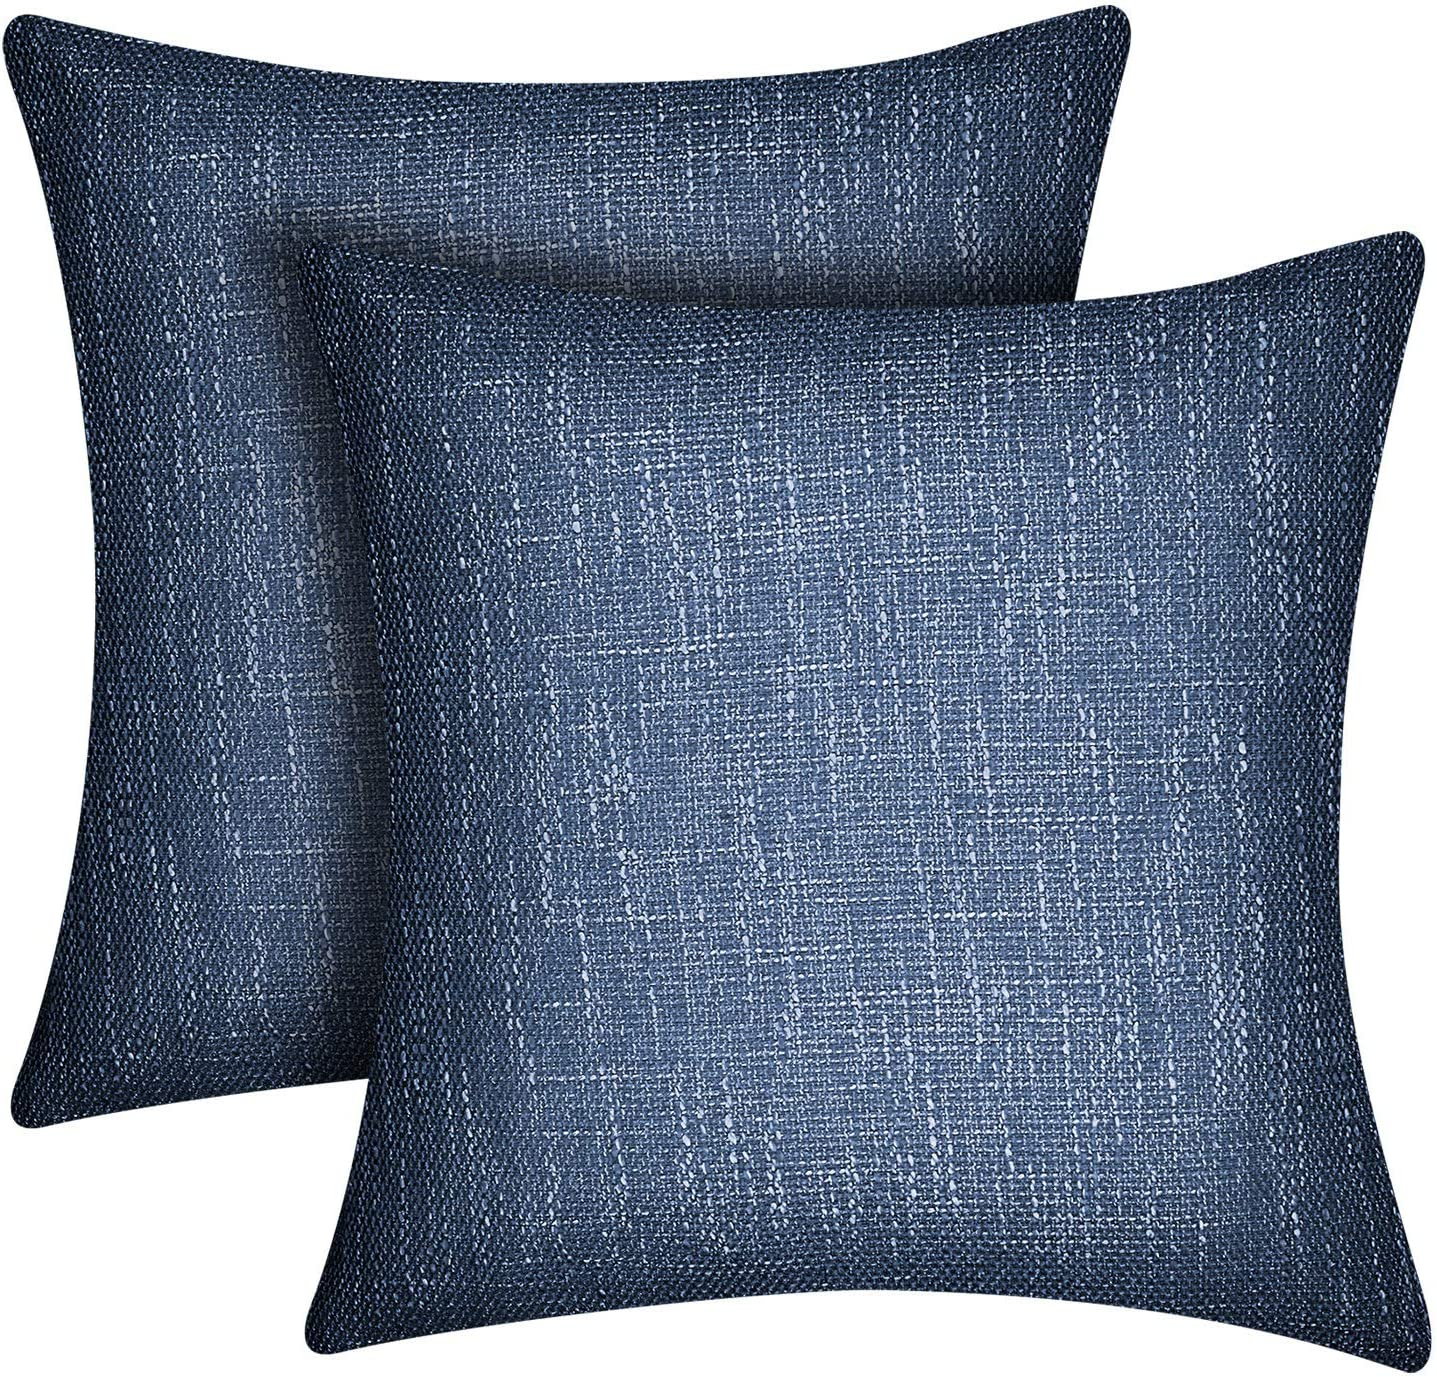 Amazon Com Lirex Linen Throw Pillow Covers 2 Pack 18 X 18 Inches Flax Linen Soft Solid Color Square Linen Decorative Pillow Cover Antistatic And Breathable Royal Blue Home Kitchen